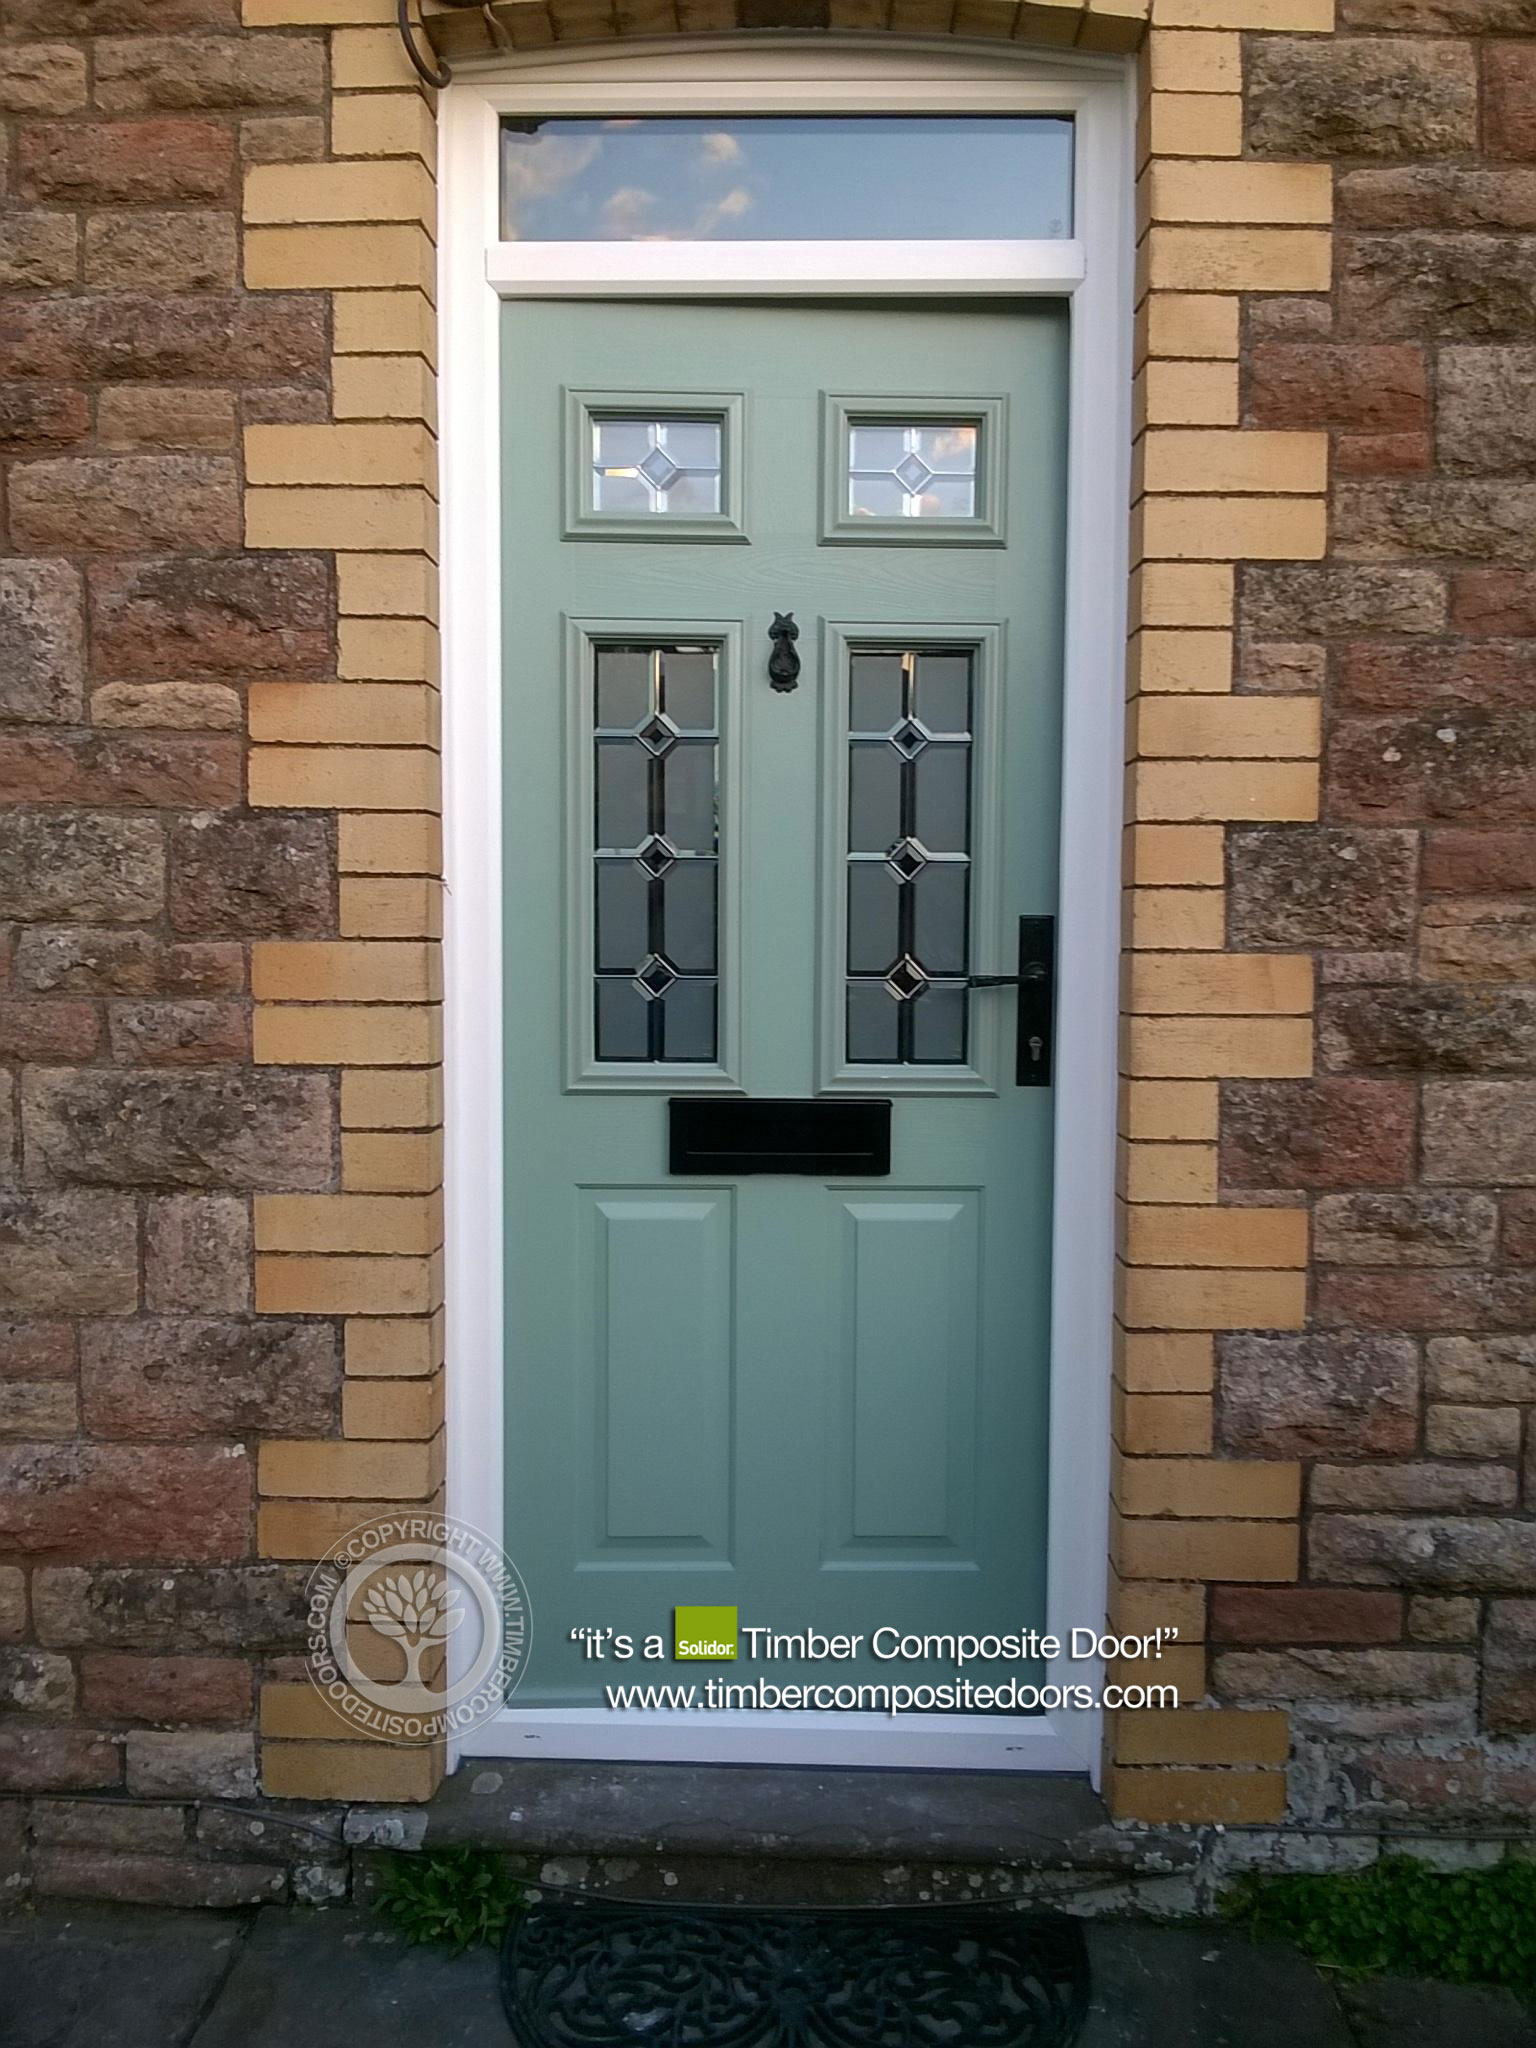 No Substitute For Style Timber Composite Doors Blog